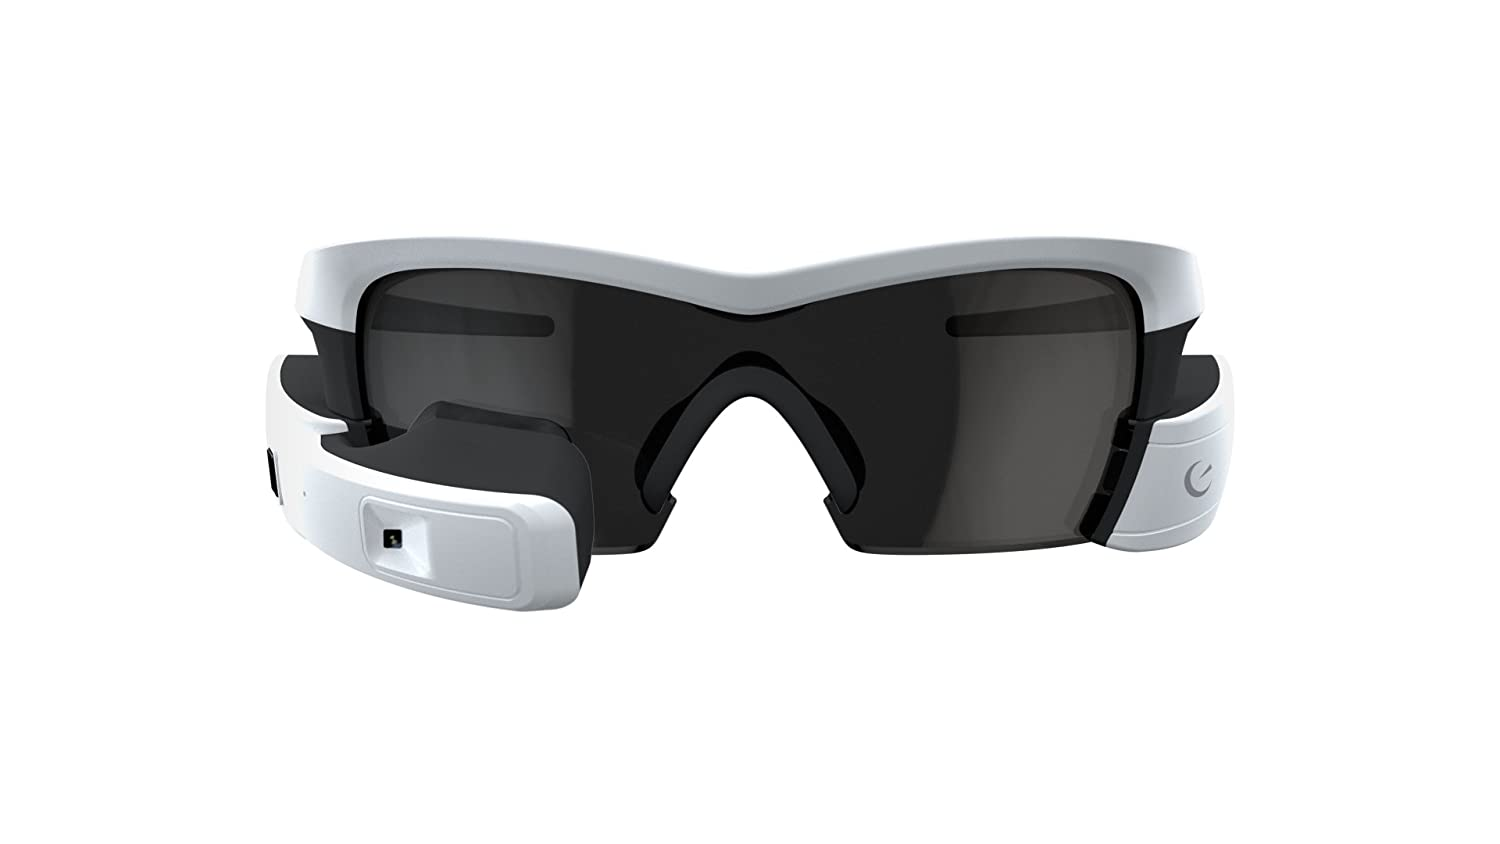 Amazon.com: Recon Jet Smart Eyewear for Sports and Fitness - White ...